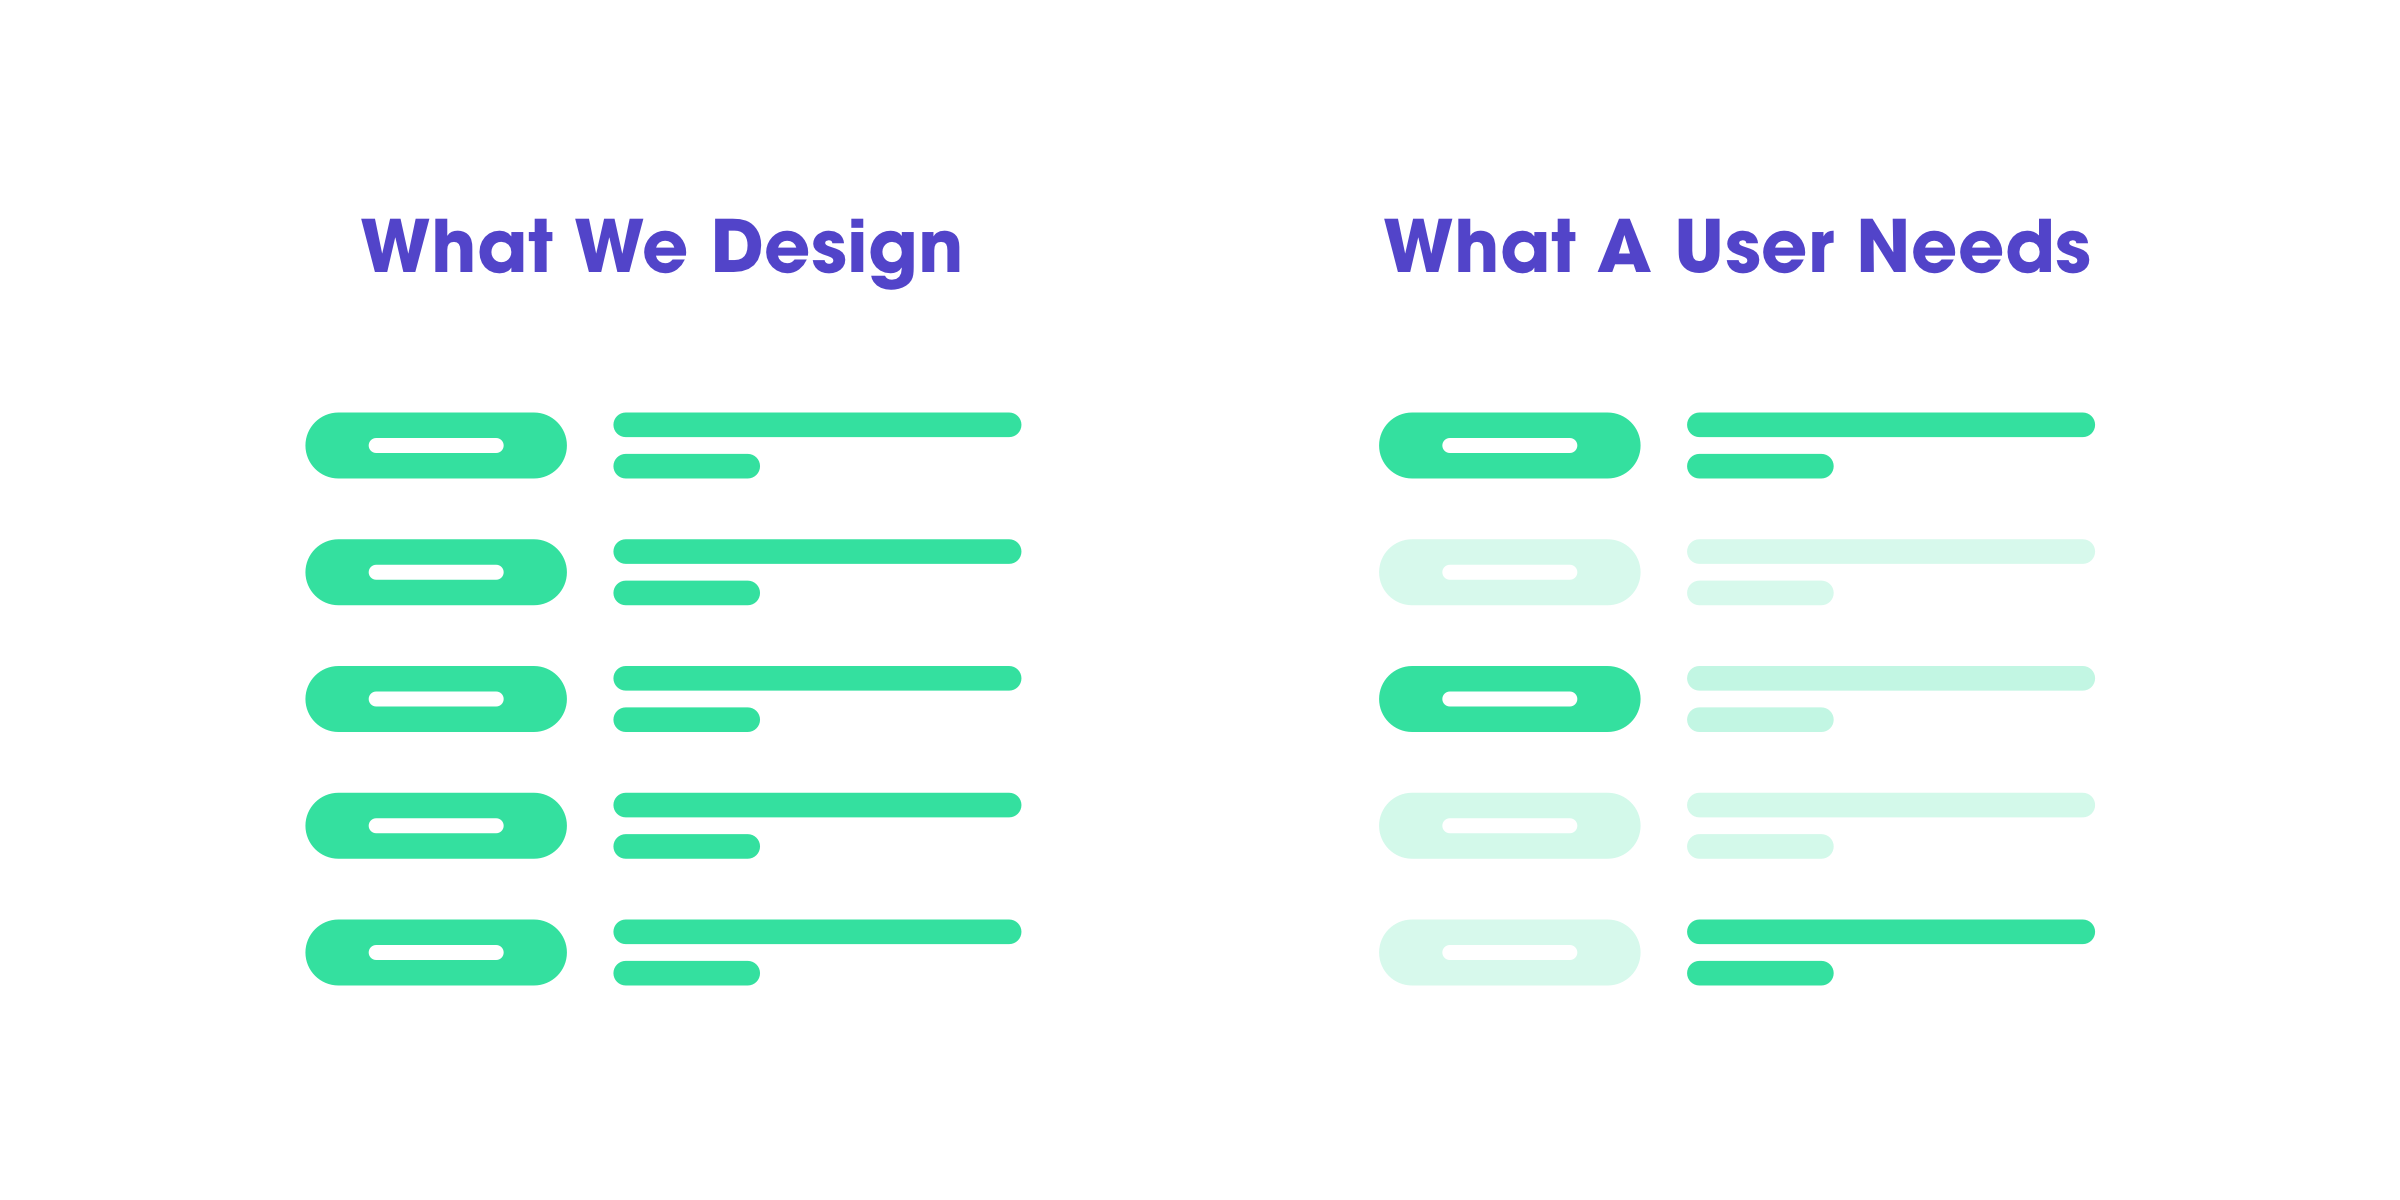 10 Small Design Mistakes We Still Make - UX Planet